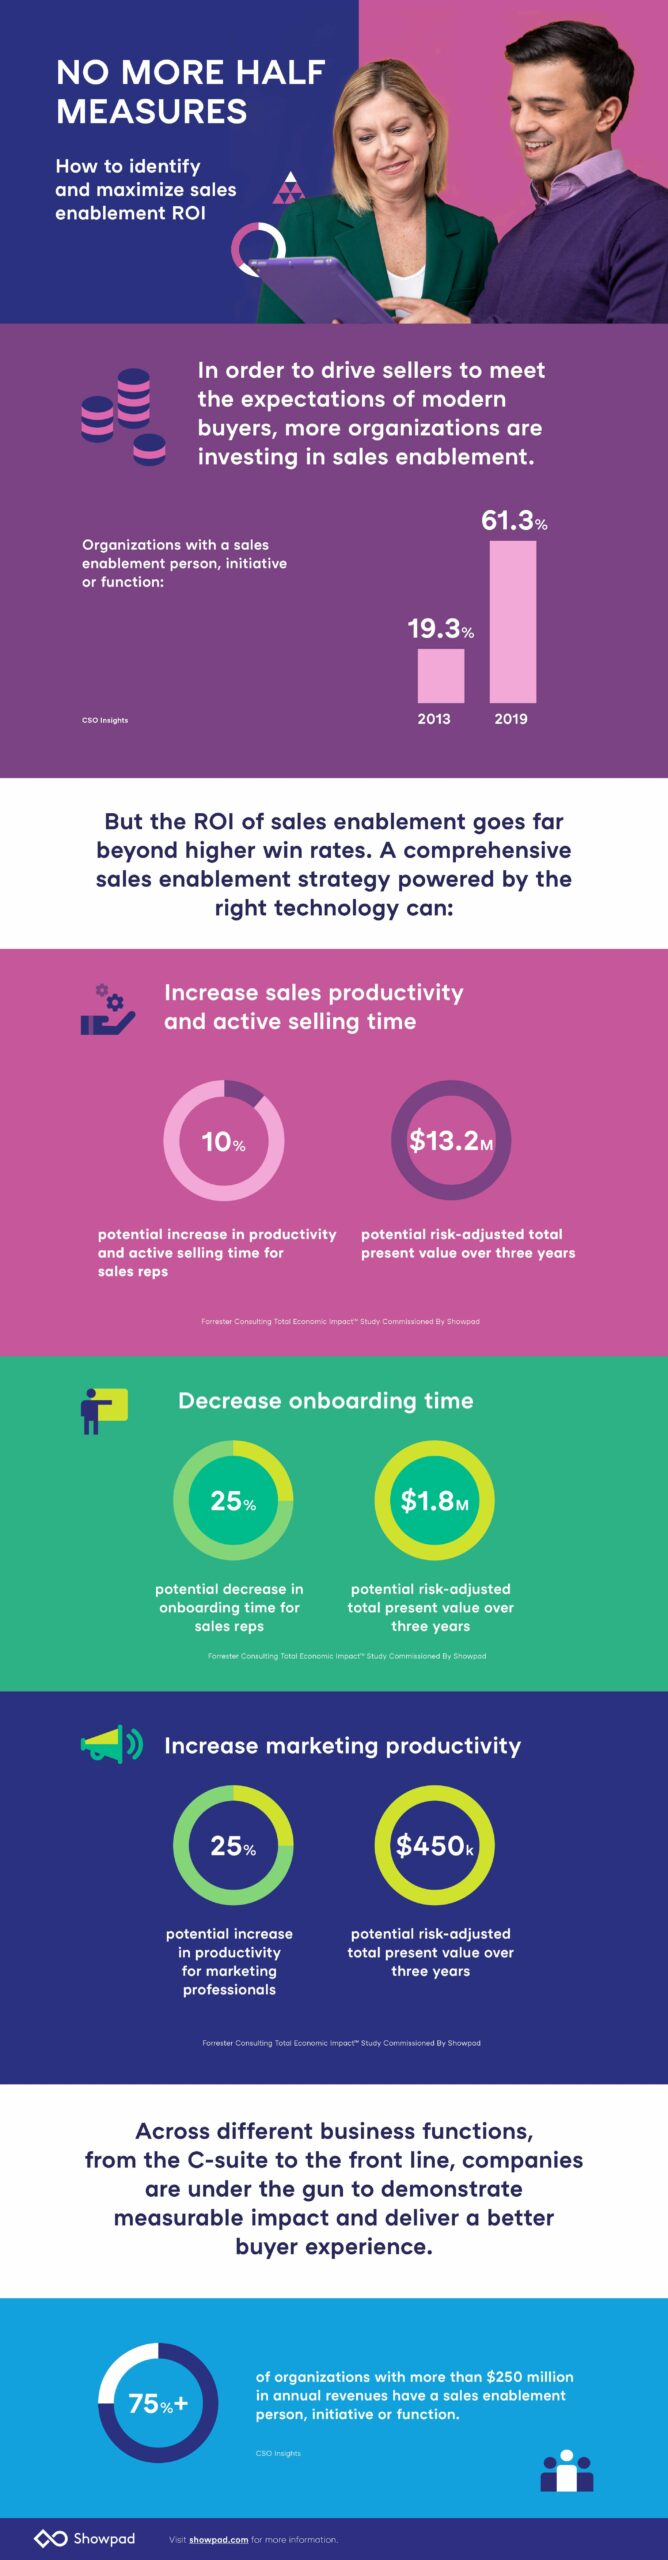 Sales enablement ROI infographic